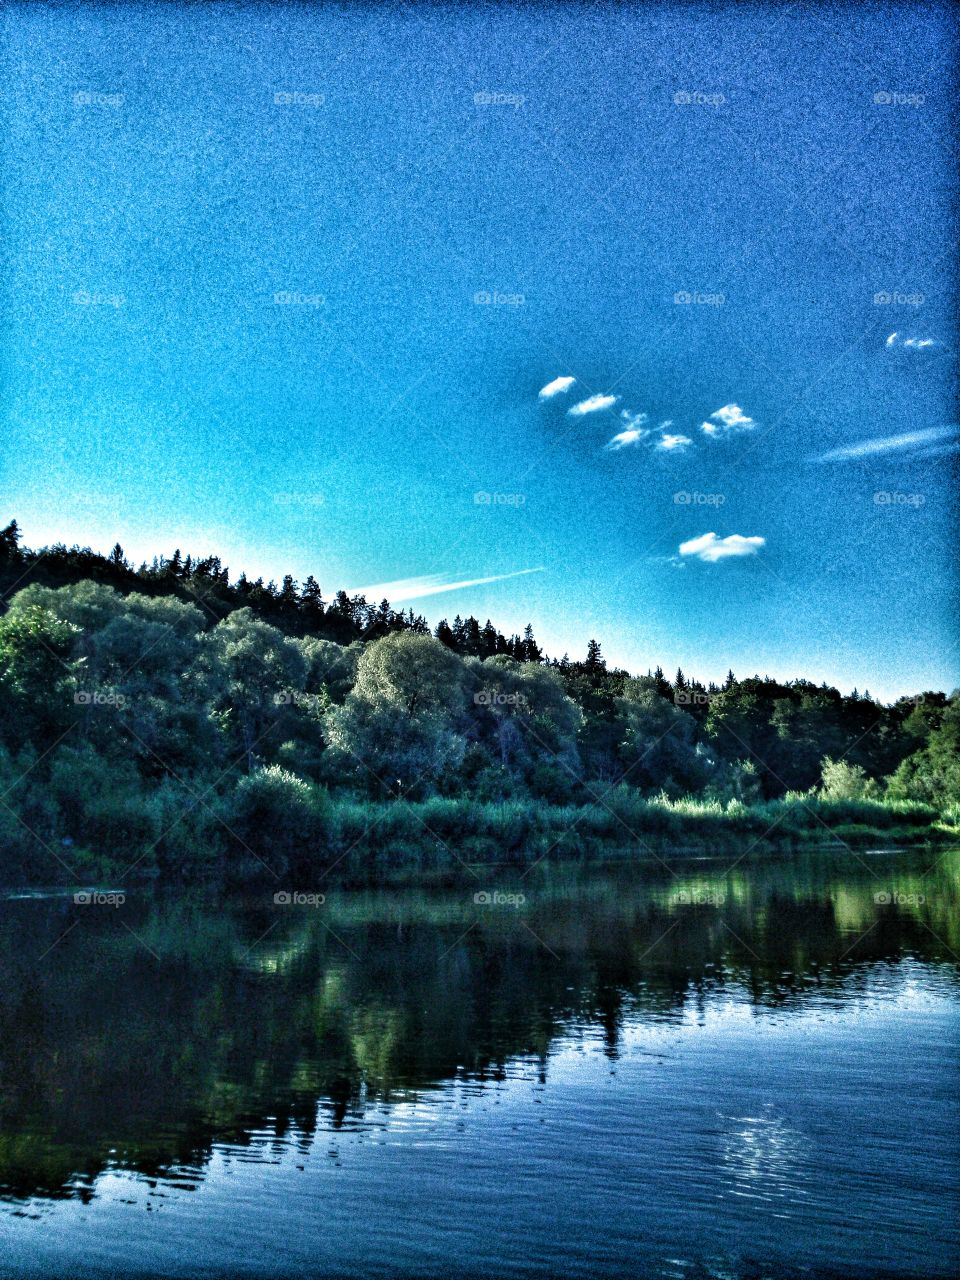 Nature. Summertime in Northern Europe.